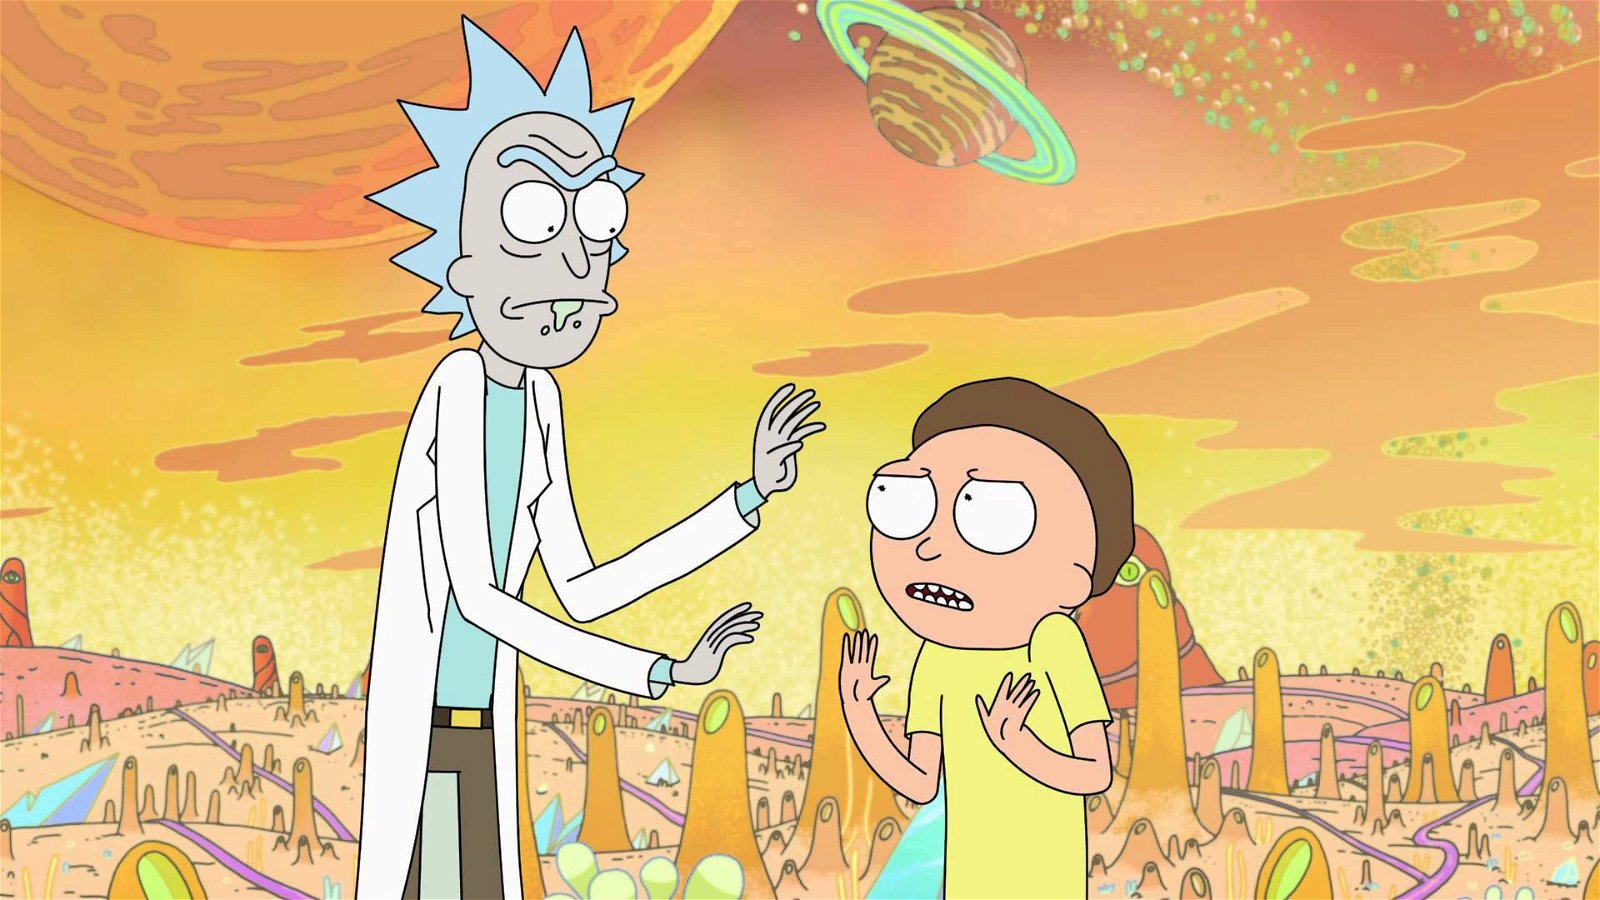 'Rick and Morty' Seasons 1-4 out With a New Blu-ray Boxset